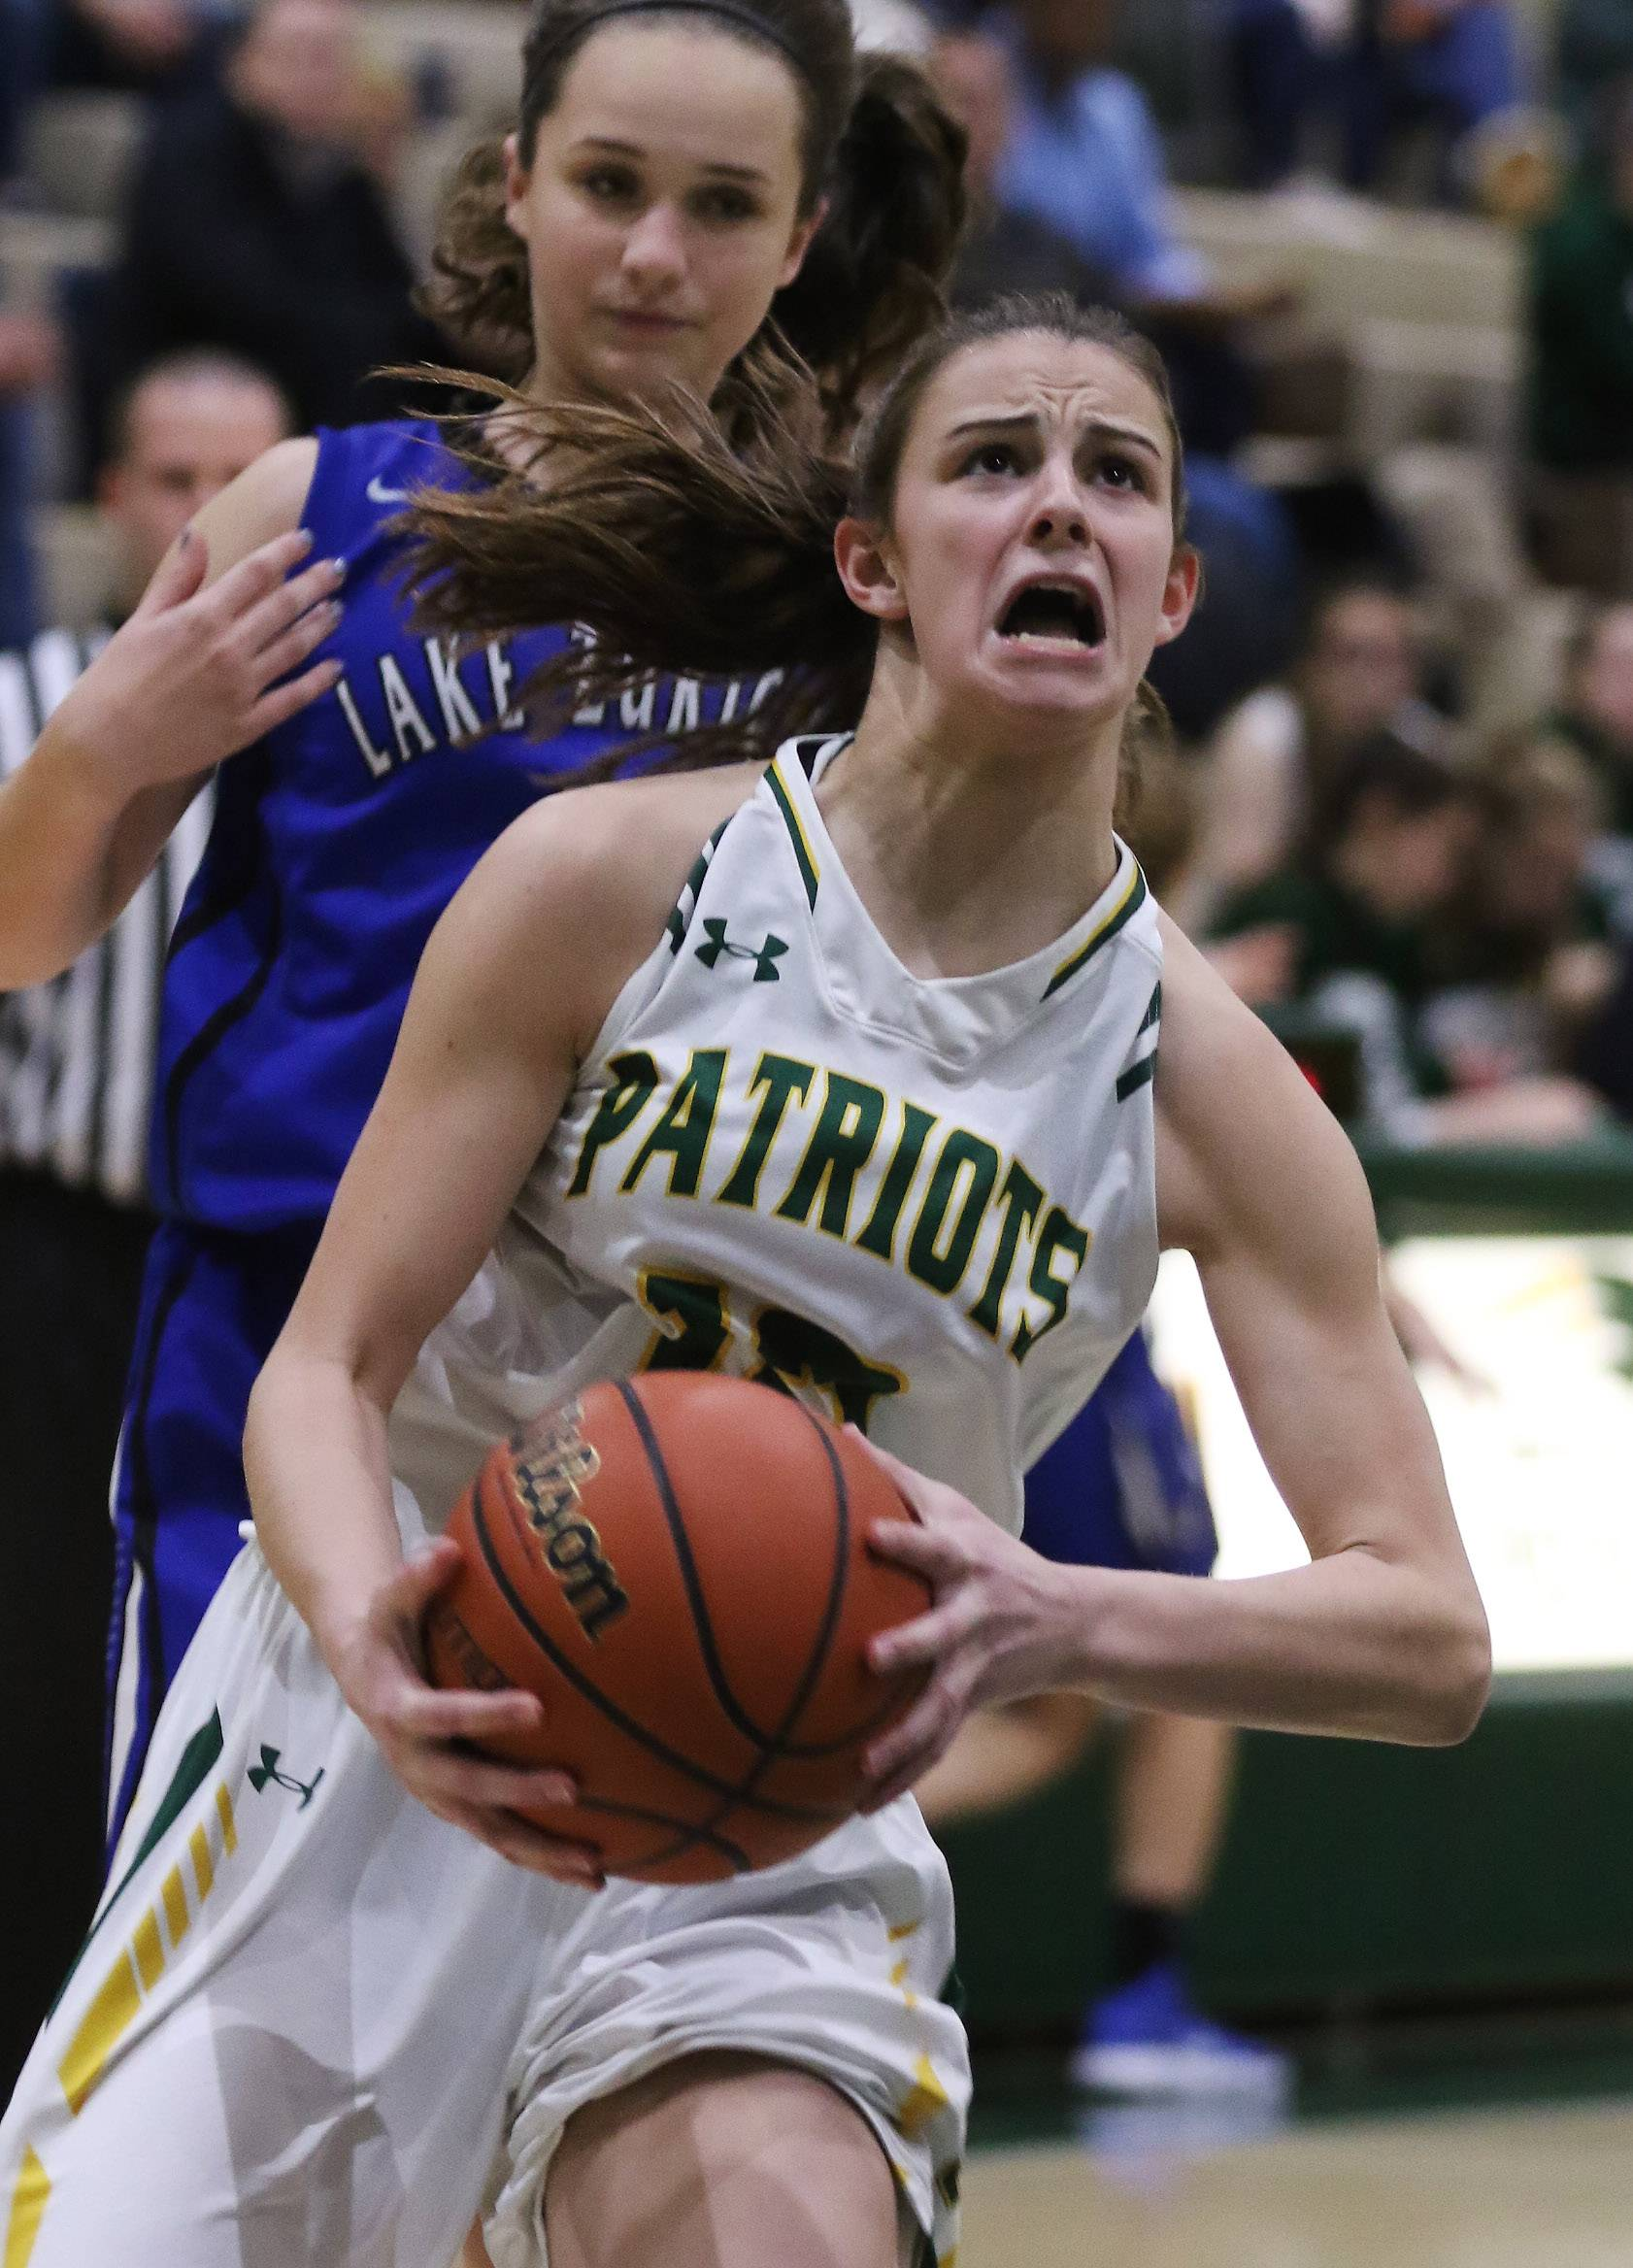 Stevenson guard Krissy Hill drives to the basket past Lake Zurich guard Margueret Spear on Thursday at Stevenson.